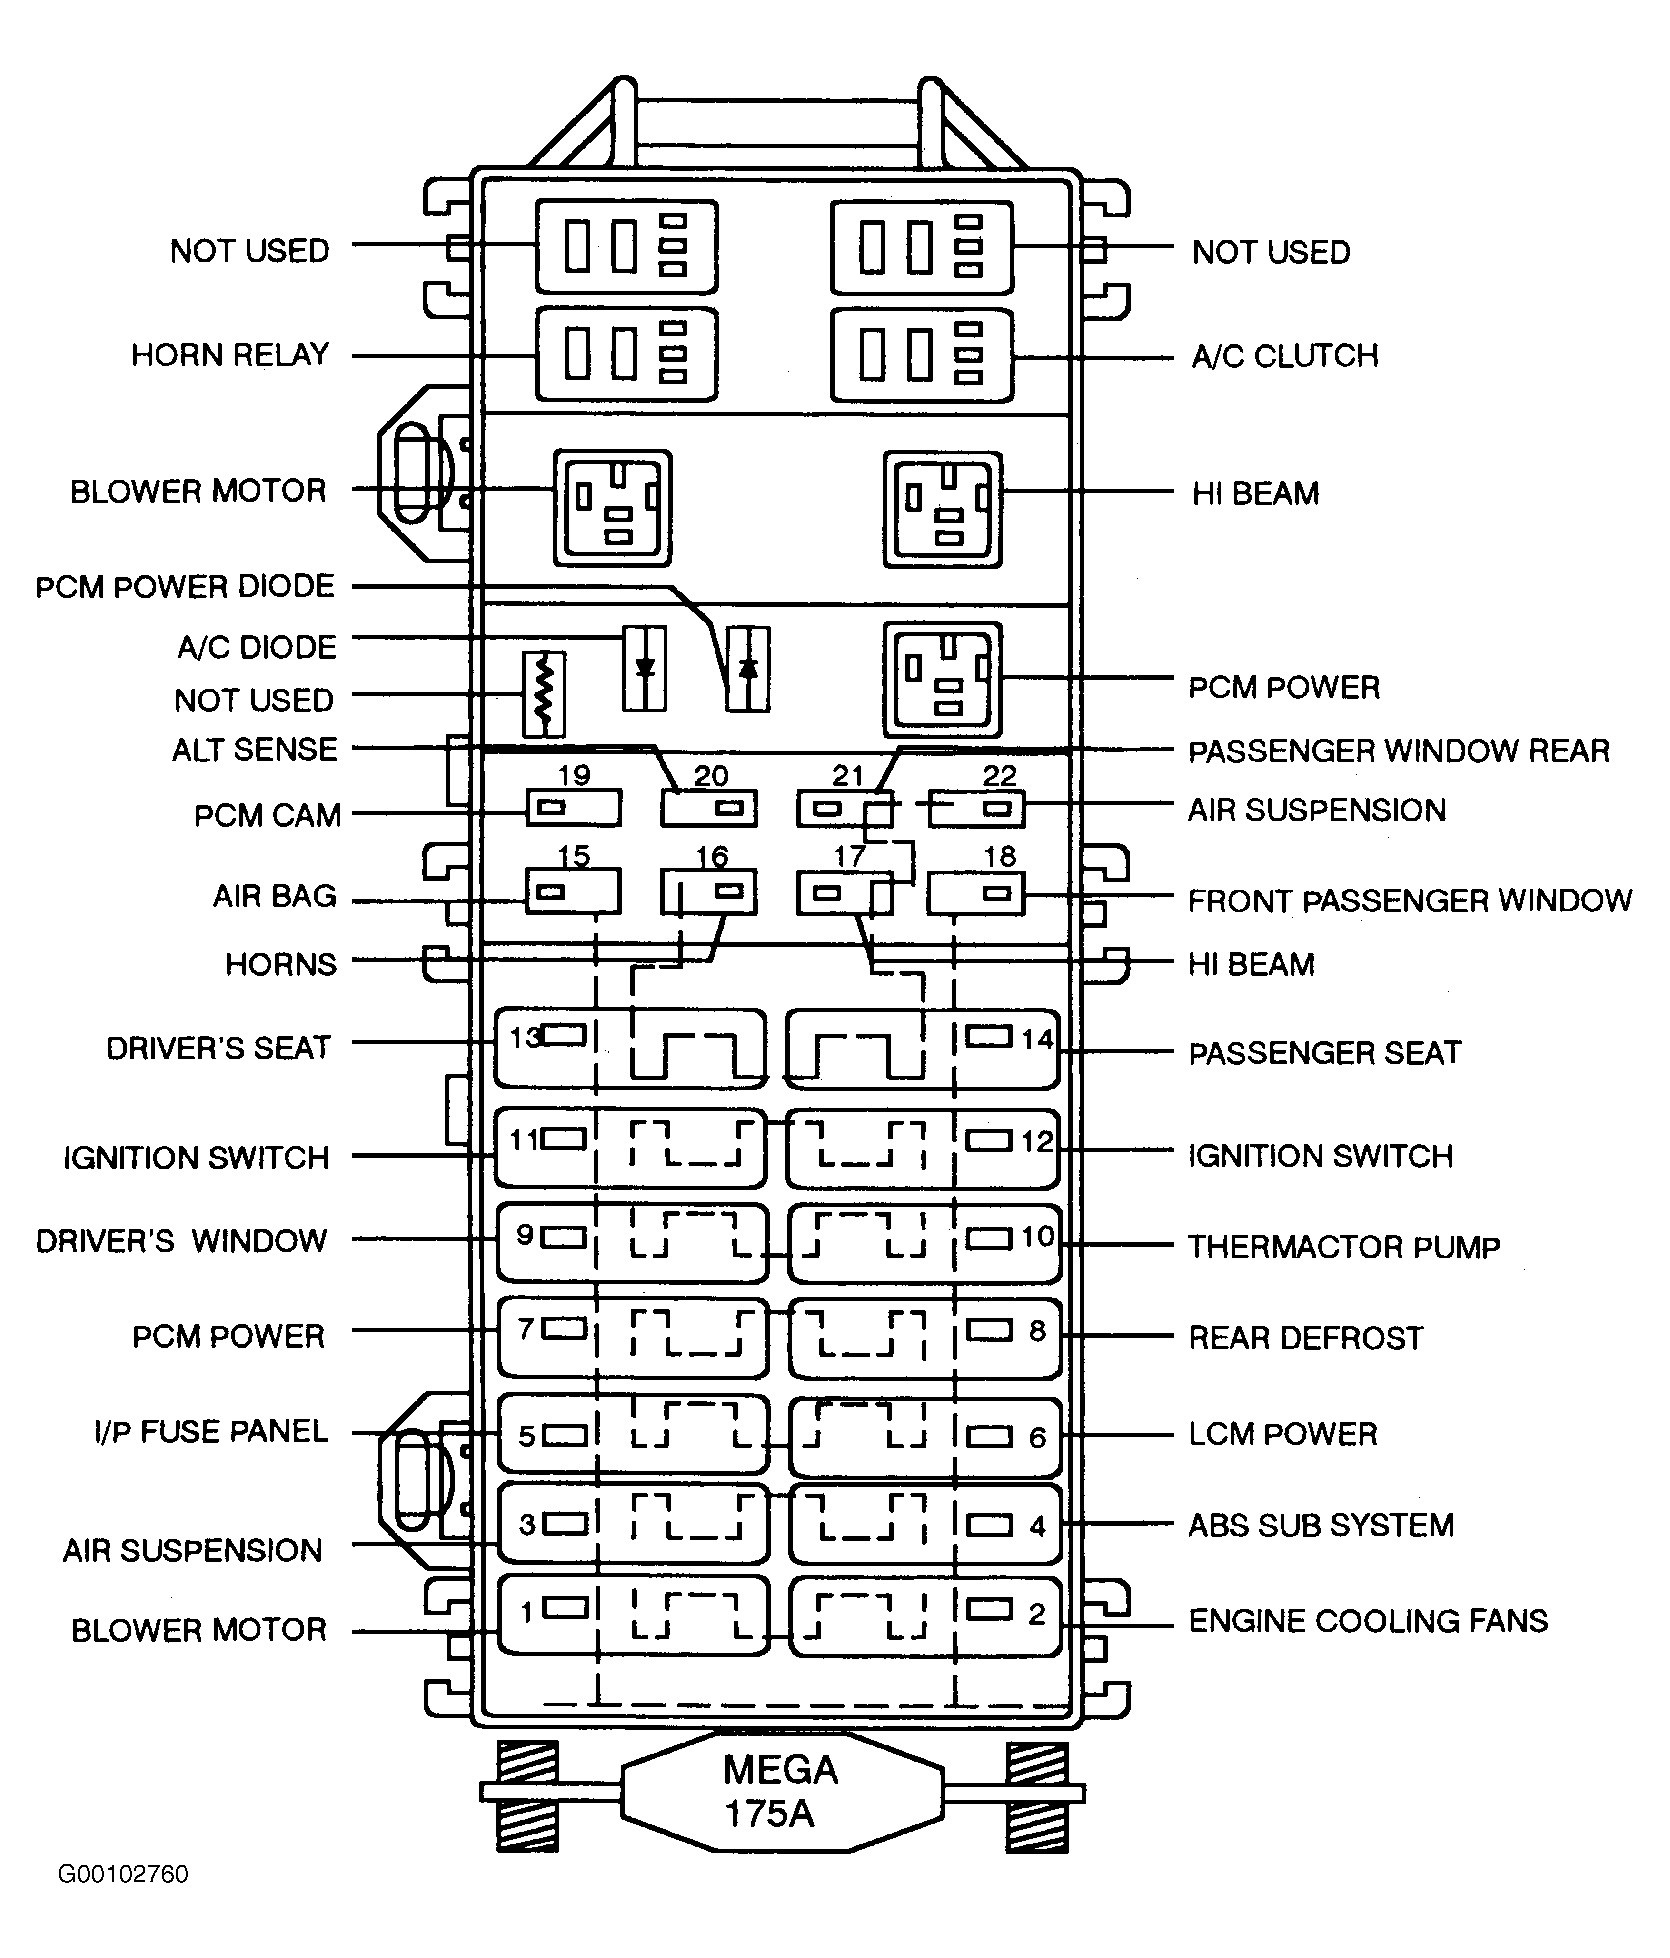 1998 lincoln continental fuse panel diagram wiring diagram database 2001 lincoln navigator fuse box 1998 lincoln [ 1670 x 1958 Pixel ]